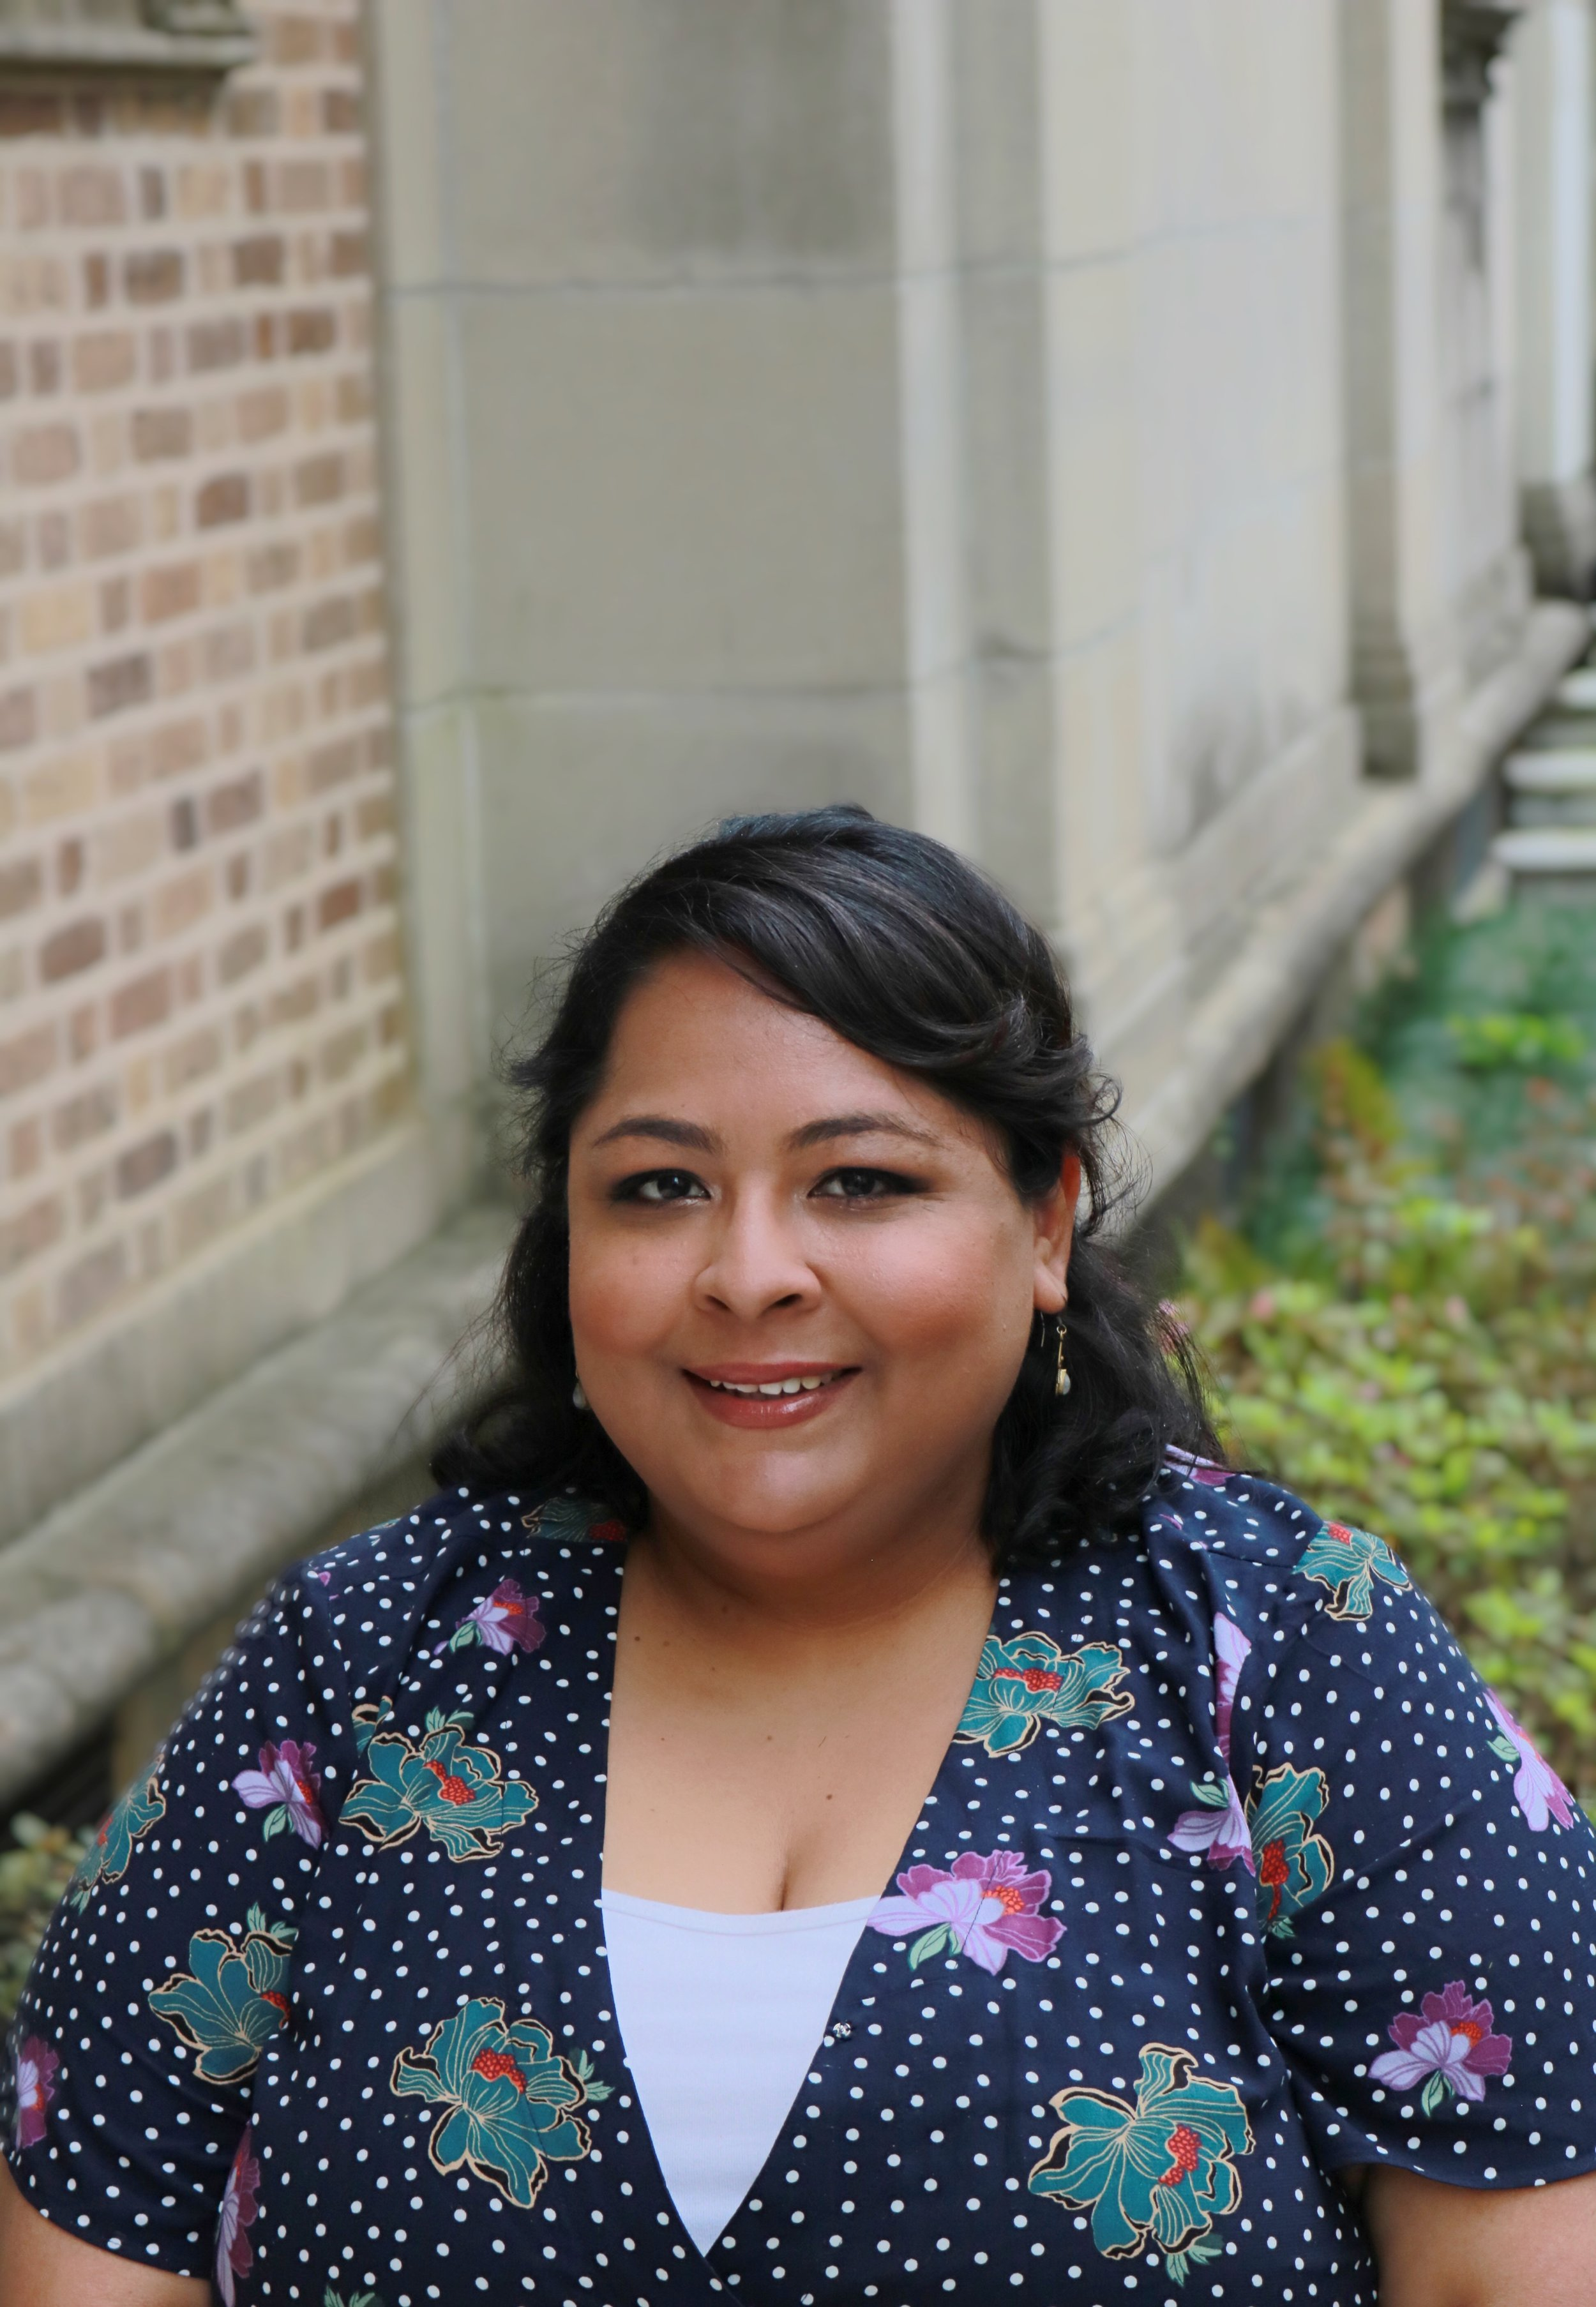 "About the Writer: - Diana Hernandez is a Latina of Mexican heritage. She is an educator and historic preservation/public history researcher. She completed her Master of Arts in Spanish from the University of Houston where she later served as an Adjunct Lecturer. Hernandez has also taught at Texas Southern University as well as for several school districts. Diana is a member of the Society for Children's Book Writers and Illustrators. Currently, she is a high school teacher in Houston, Texas. This summer, Hernandez will be conducting research with the Instituto Nacional de Antropología e Historia in Mexico City. She will be working with the Programa Nacional de Investigación Afrodescendientes y Diversidad Cultural in partnership with Proyecto Internacional, ""La Ruta Del Esclavo: Resistencia, Libertad y Patrimonio, UNESCO."